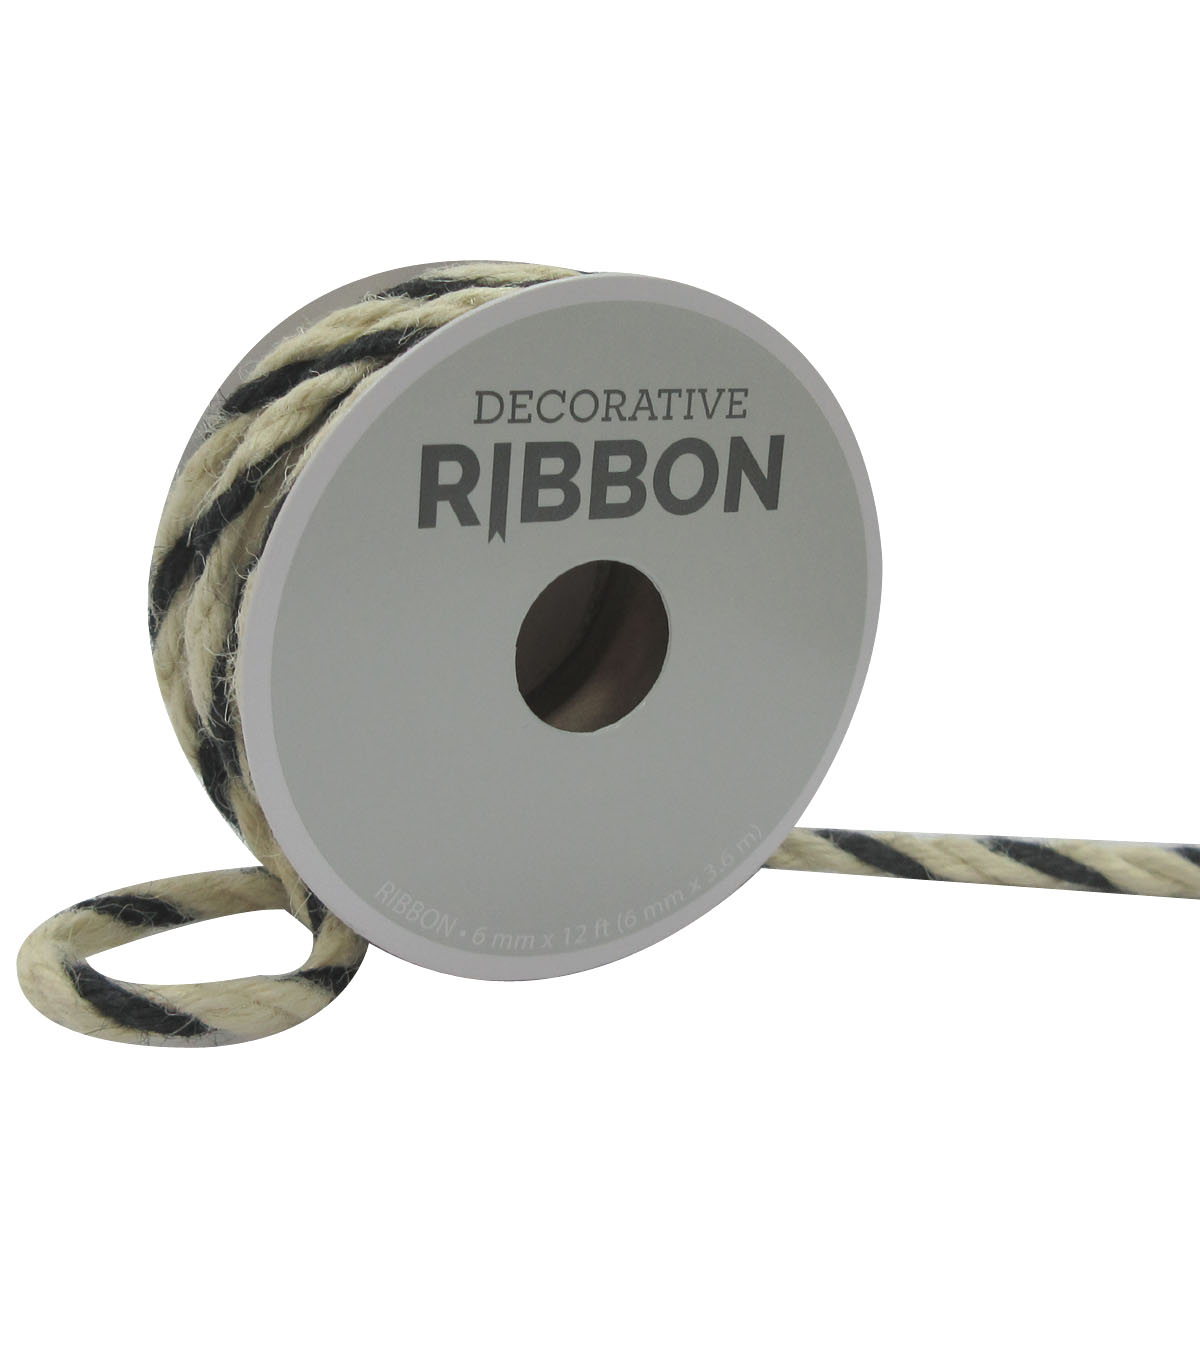 Decorative Ribbon 6mmx12\u0027 Narrow Cord-Ivory & Black